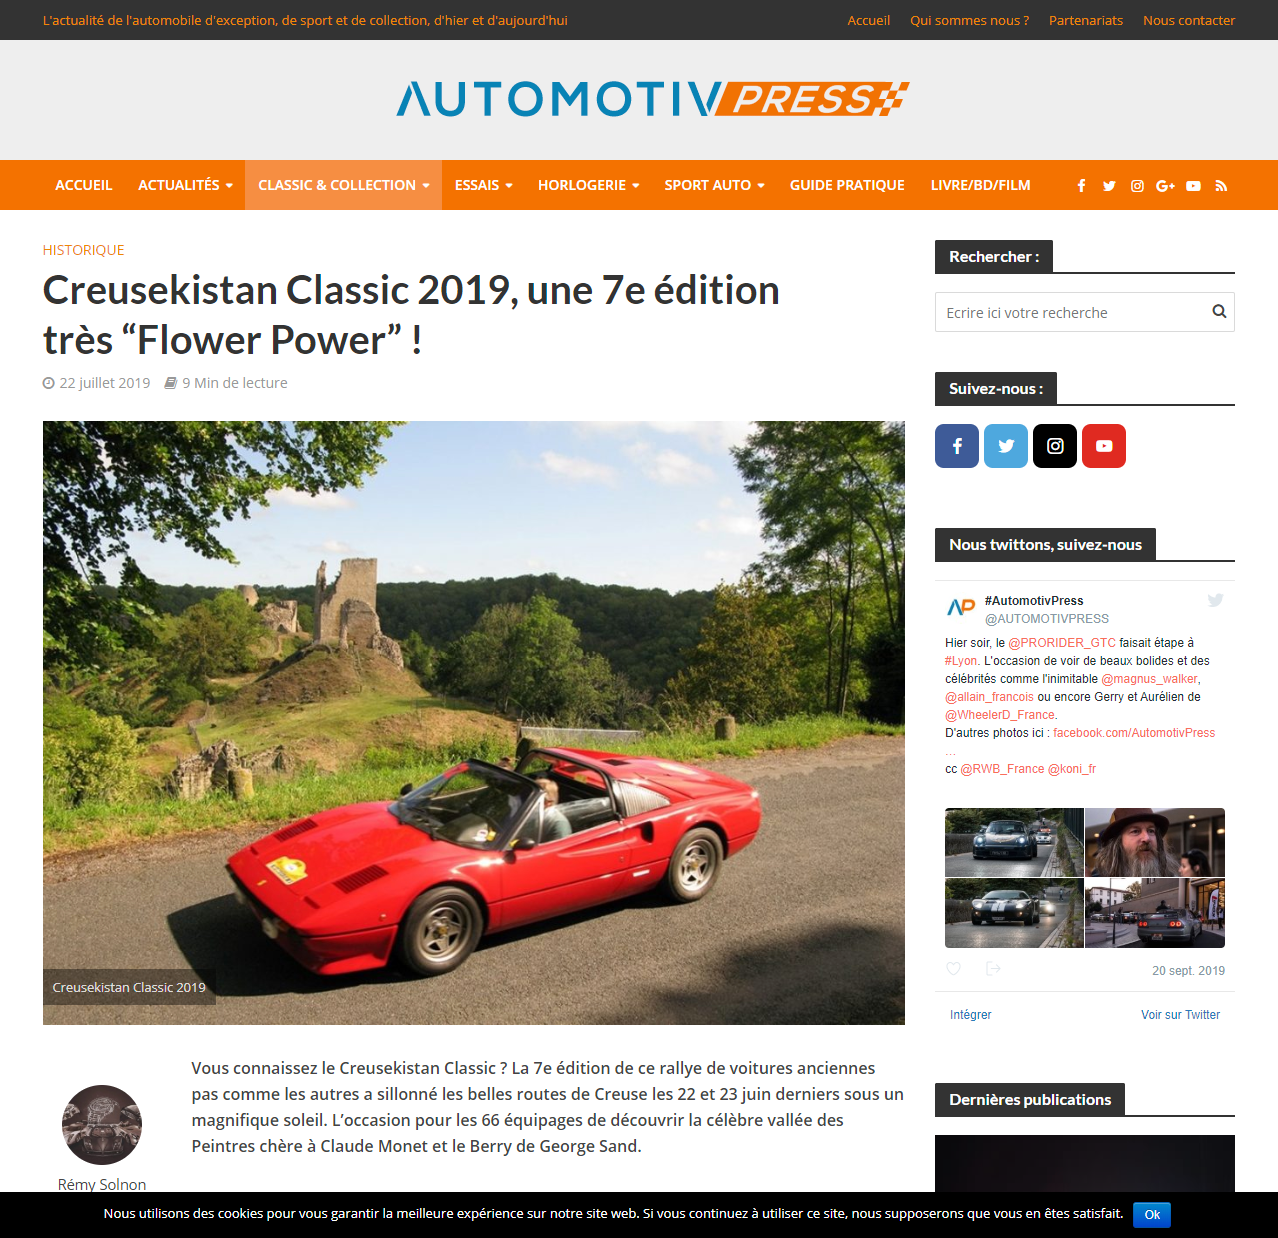 Article sur le CRK2019 dans Automotiv Press